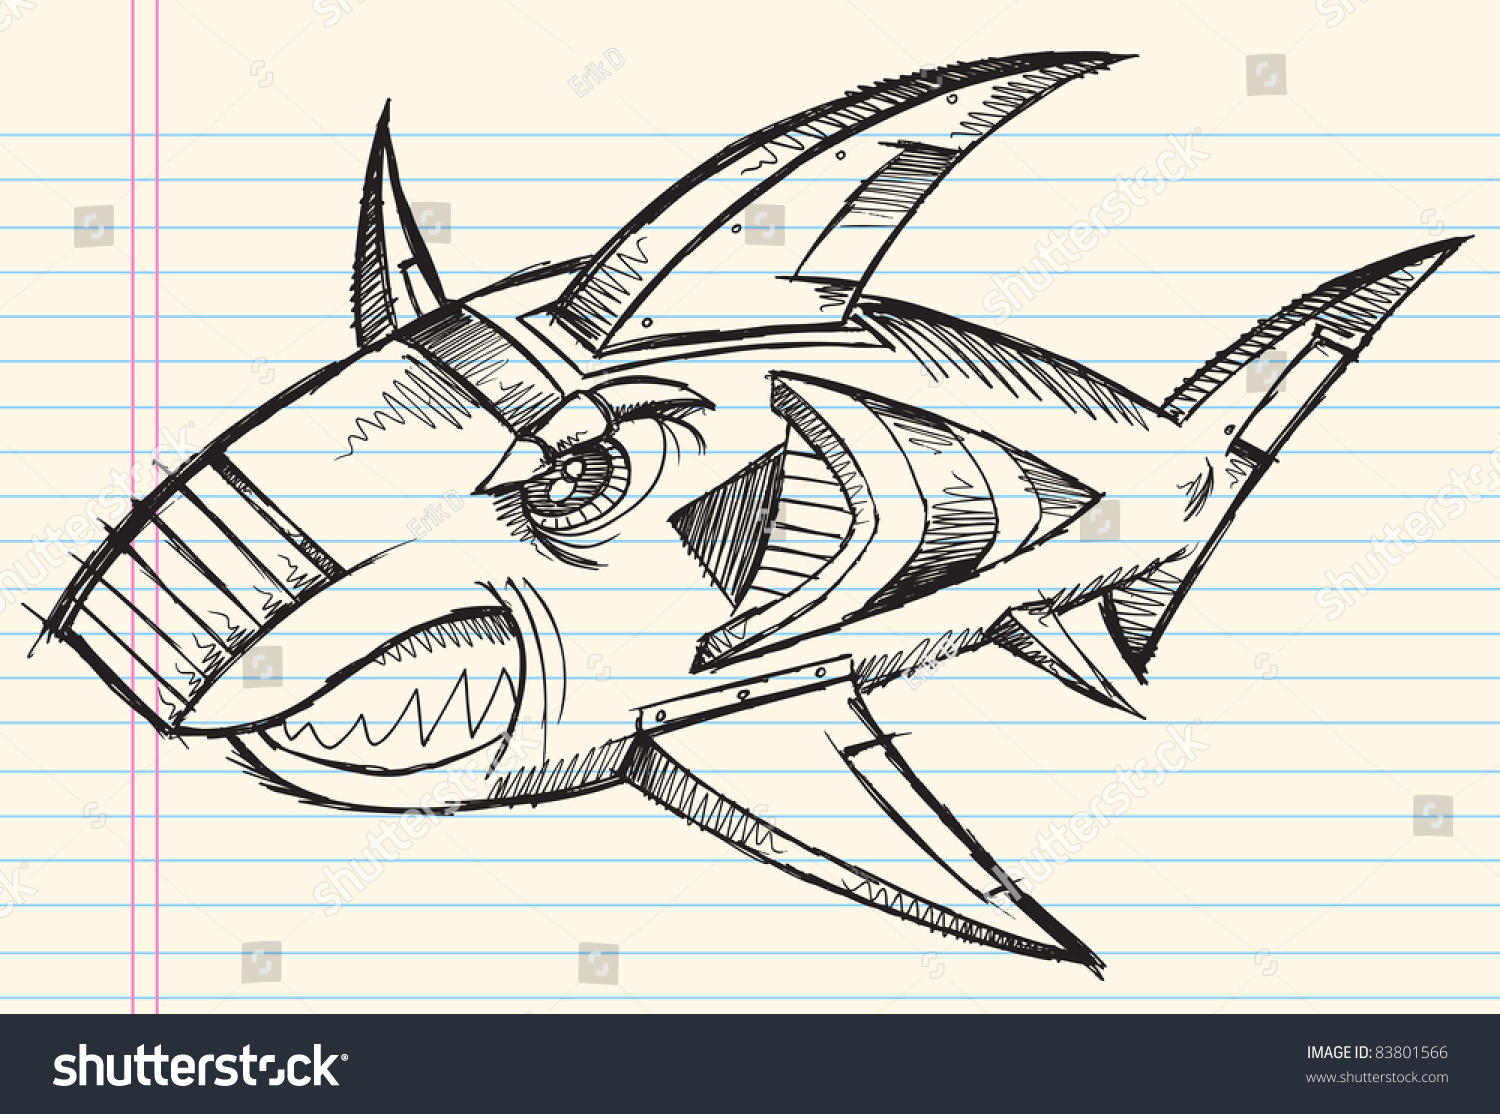 Notebook And Pen Sketch Stock Vector Art More Images Of